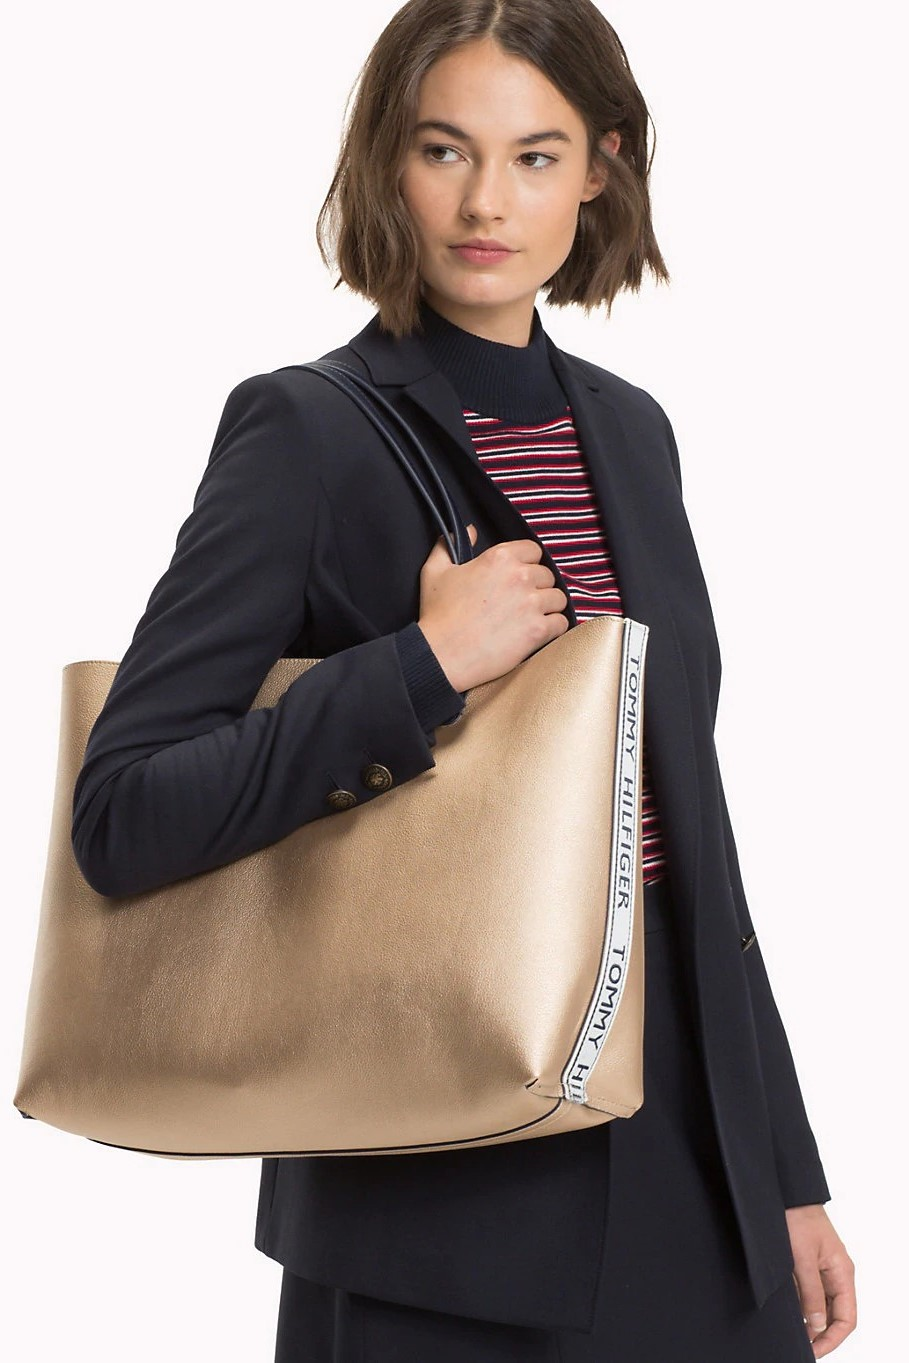 Tommy Hilfiger double-sided Iconic Tommy Tote handbag - Women s ... b71a4579c00